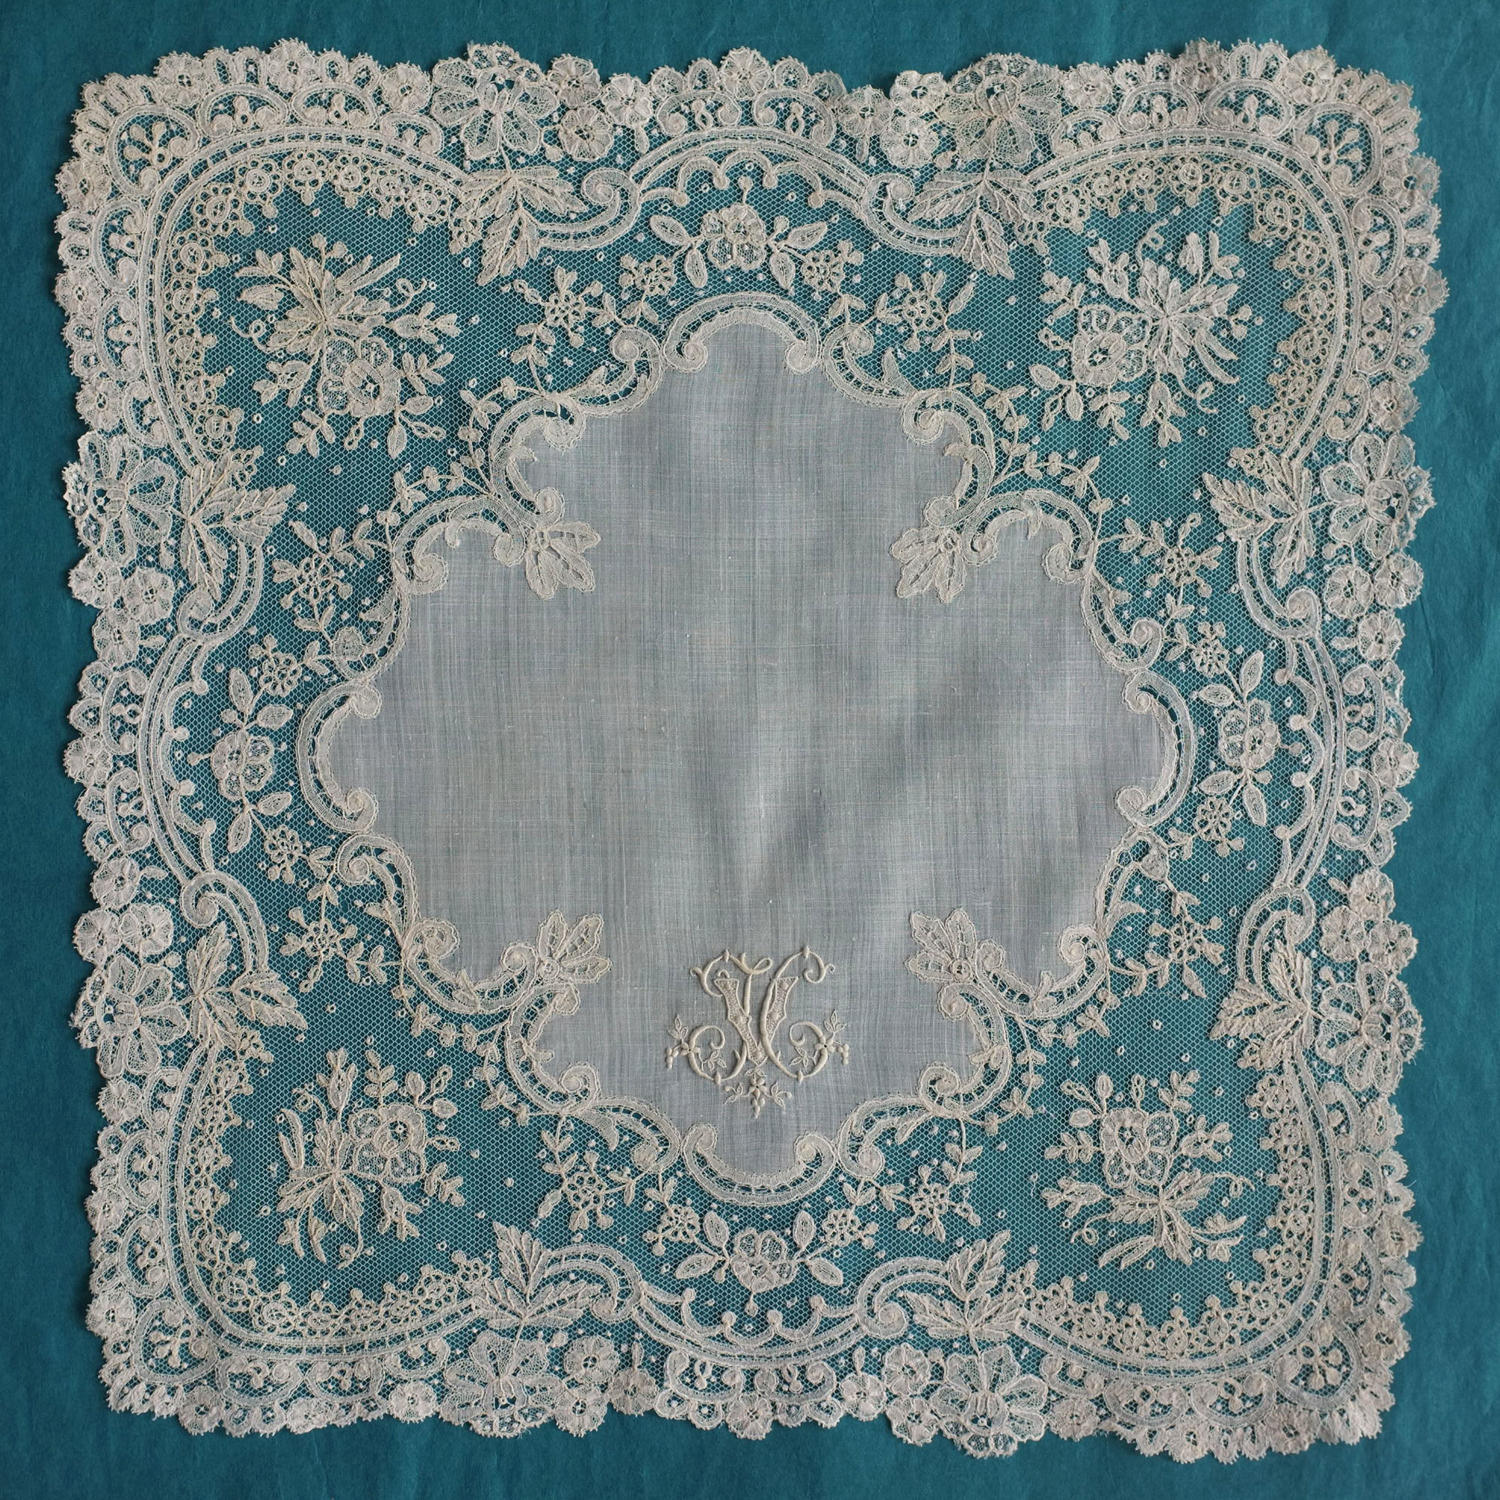 Brussels Applique Lace Handkerchief with Monogram